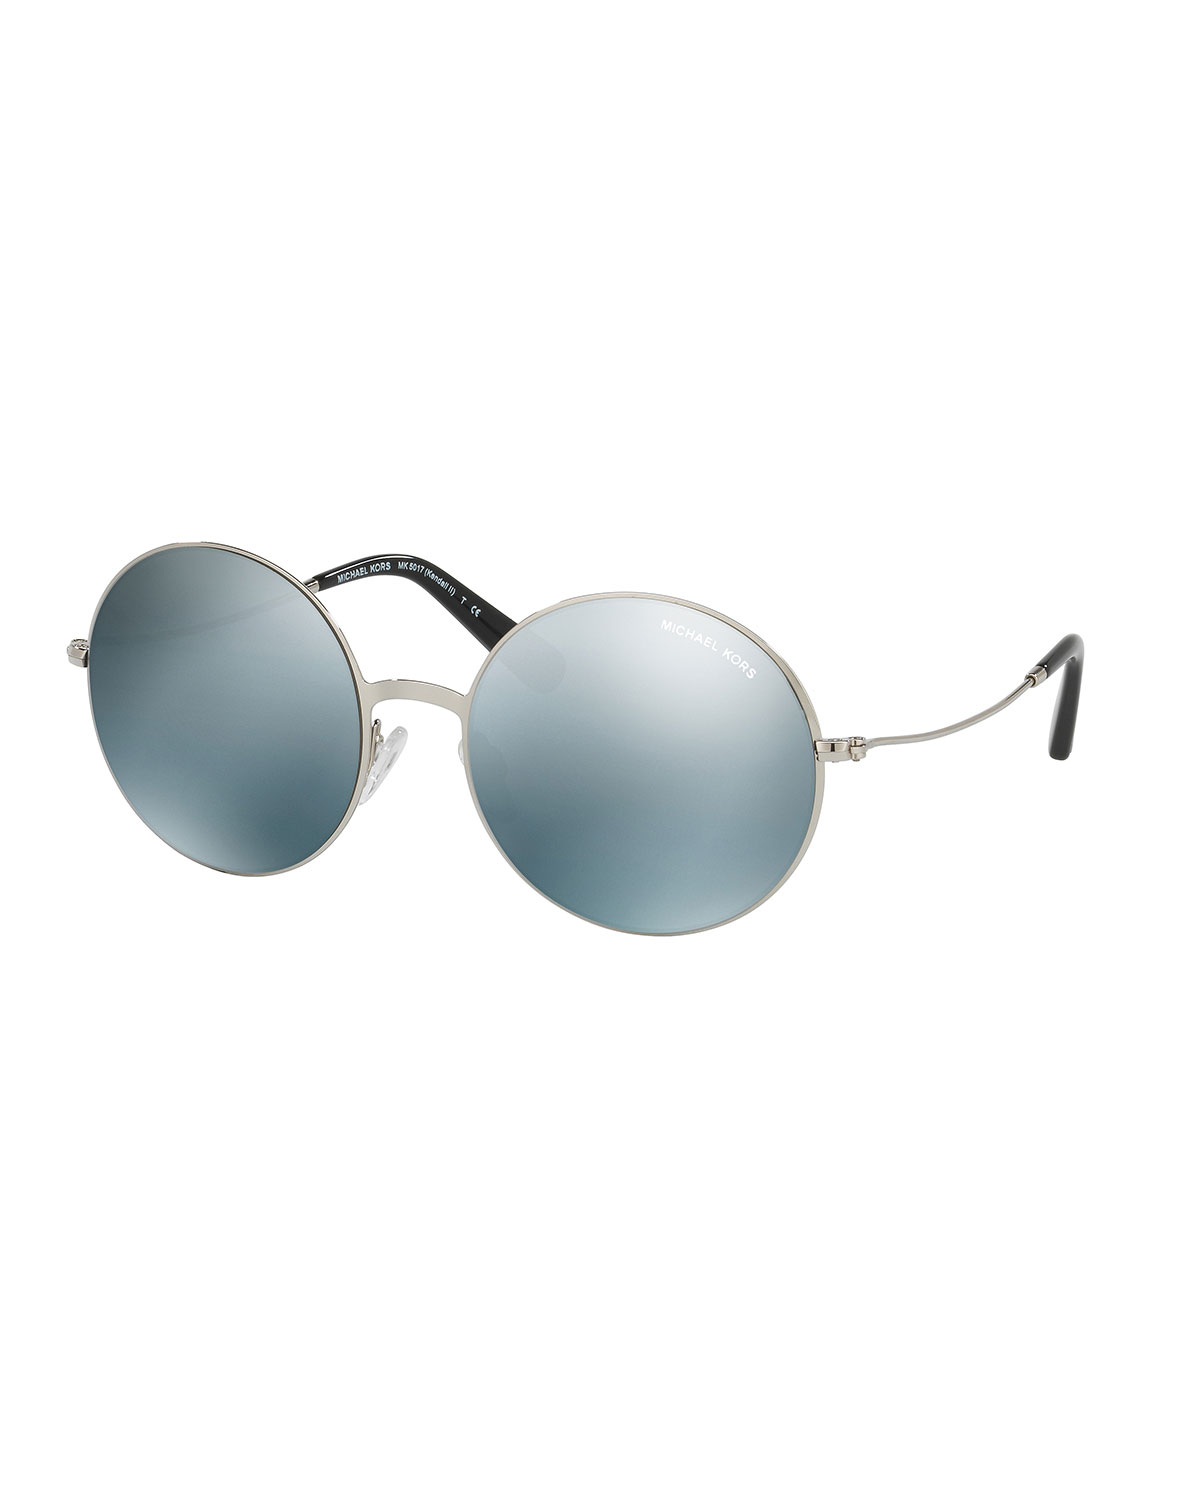 Lyst - Michael Kors Round Flash Metal Sunglasses in Blue 3d9b6d02376a